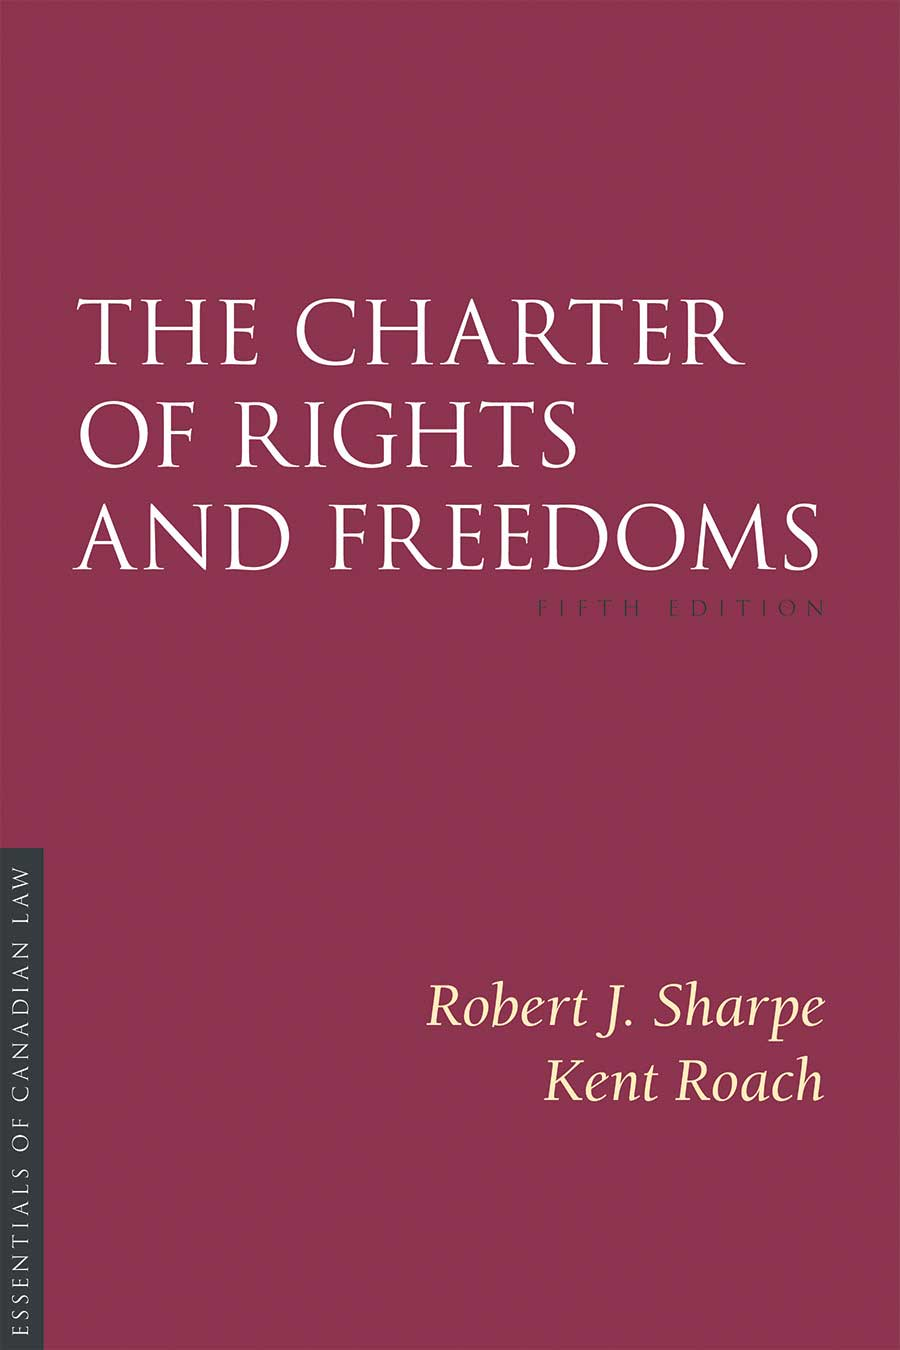 Charter-of-Rights-and-Freedoms